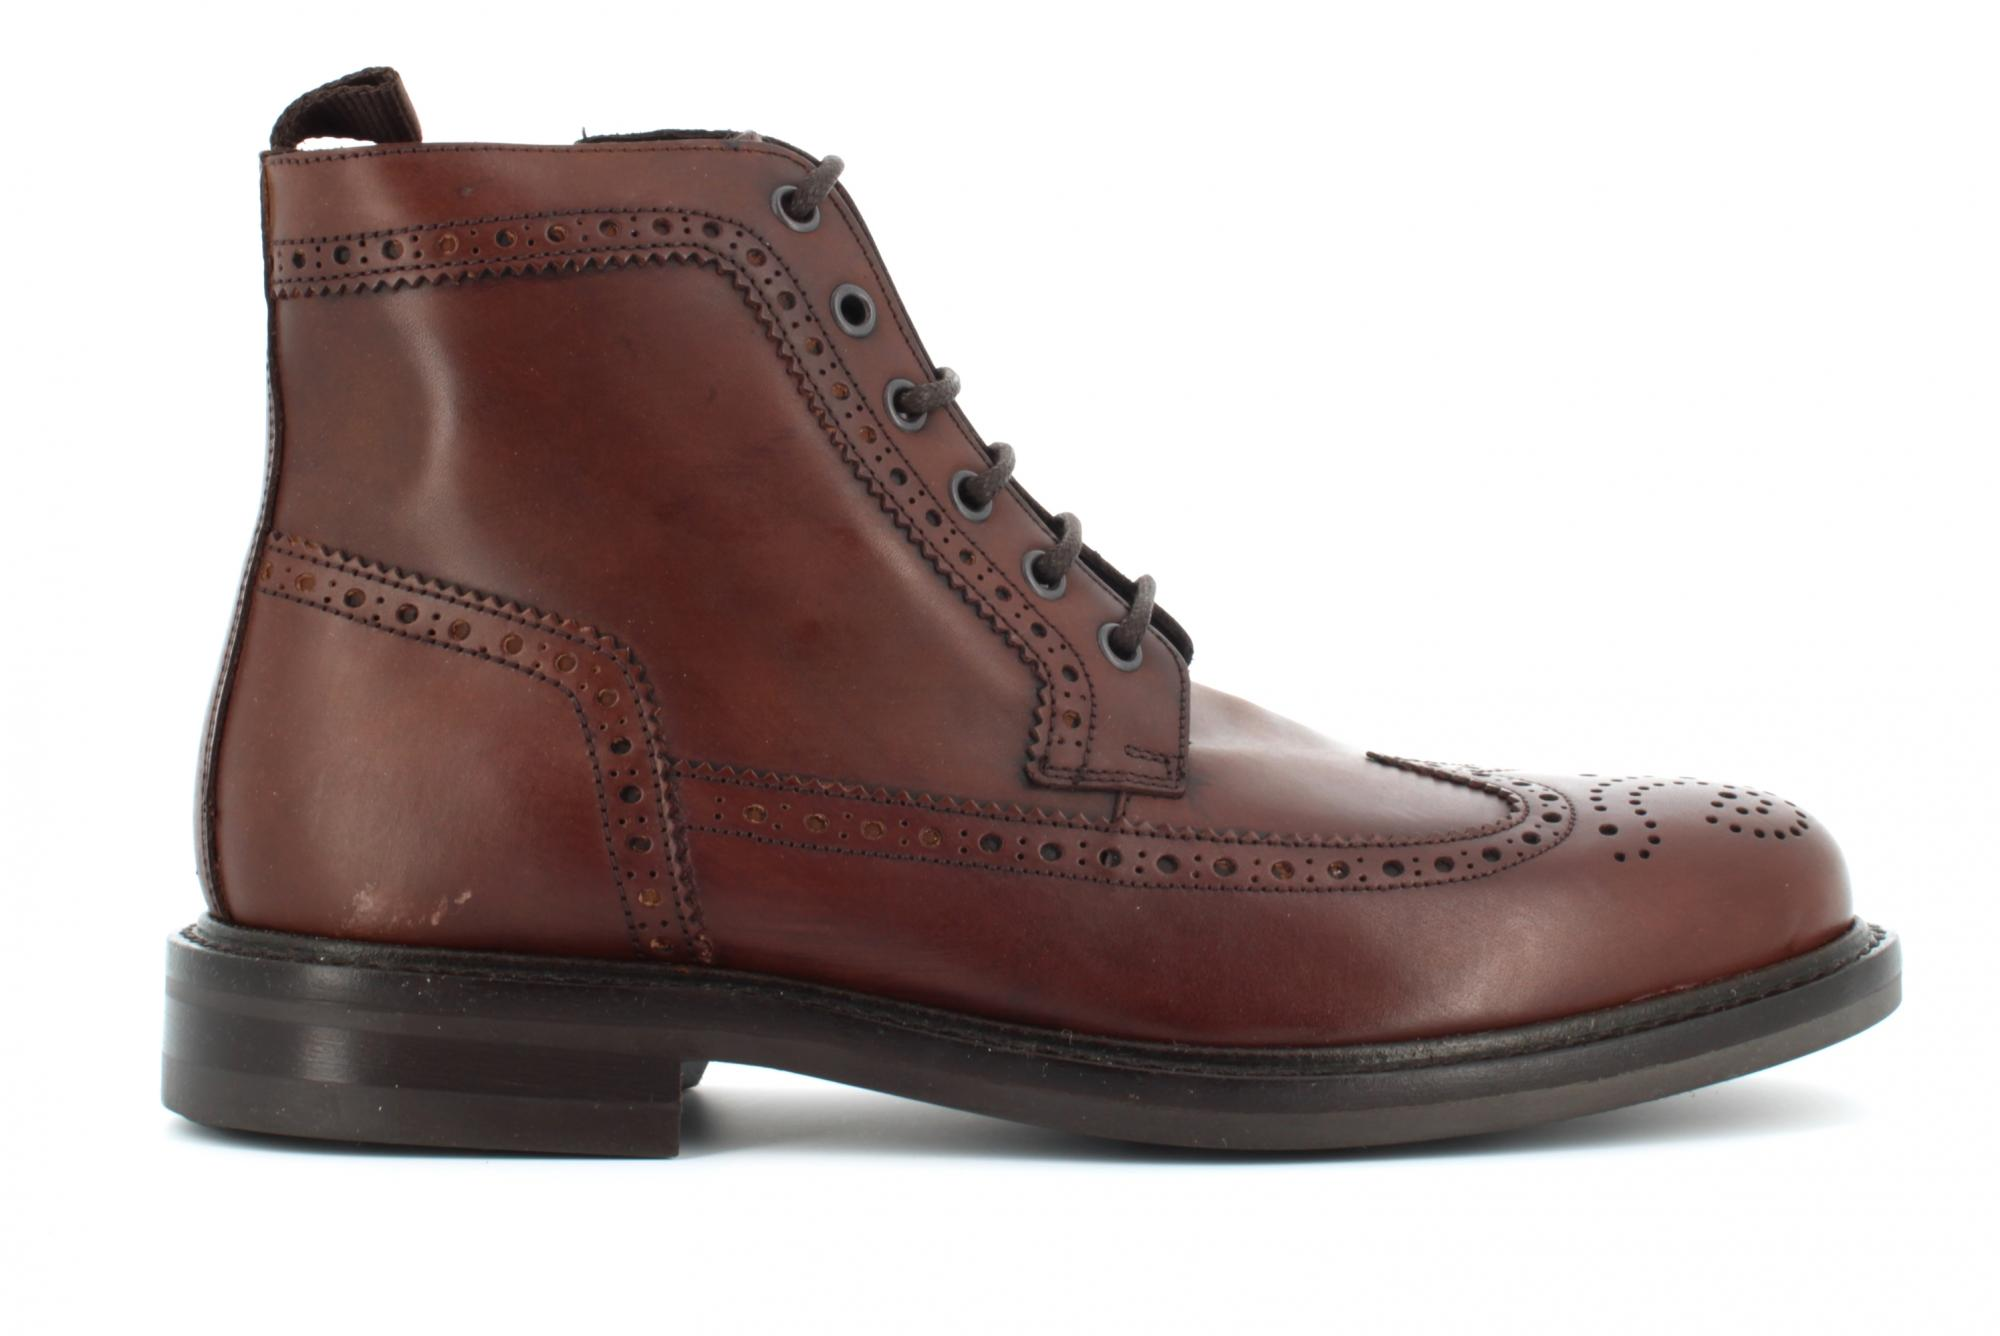 Antica Cuoieria A19f Chaussures Homme Bottes Inglesina 20620-t-v68 Batisfera